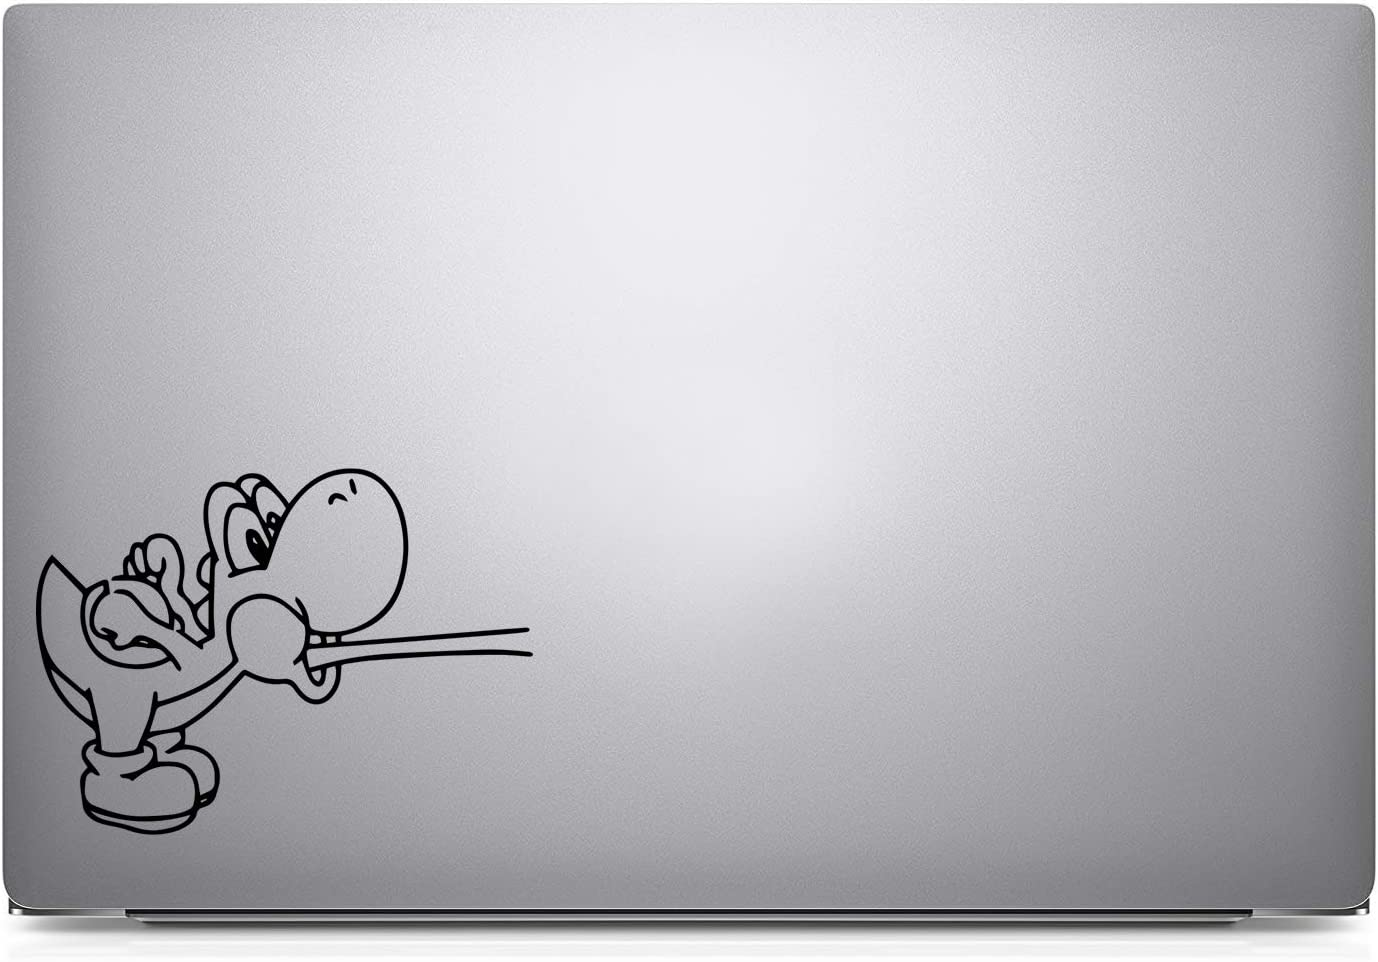 "Bargain Max Decals Yoshi Decal Notebook Car Laptop 5.5"" (Black)"